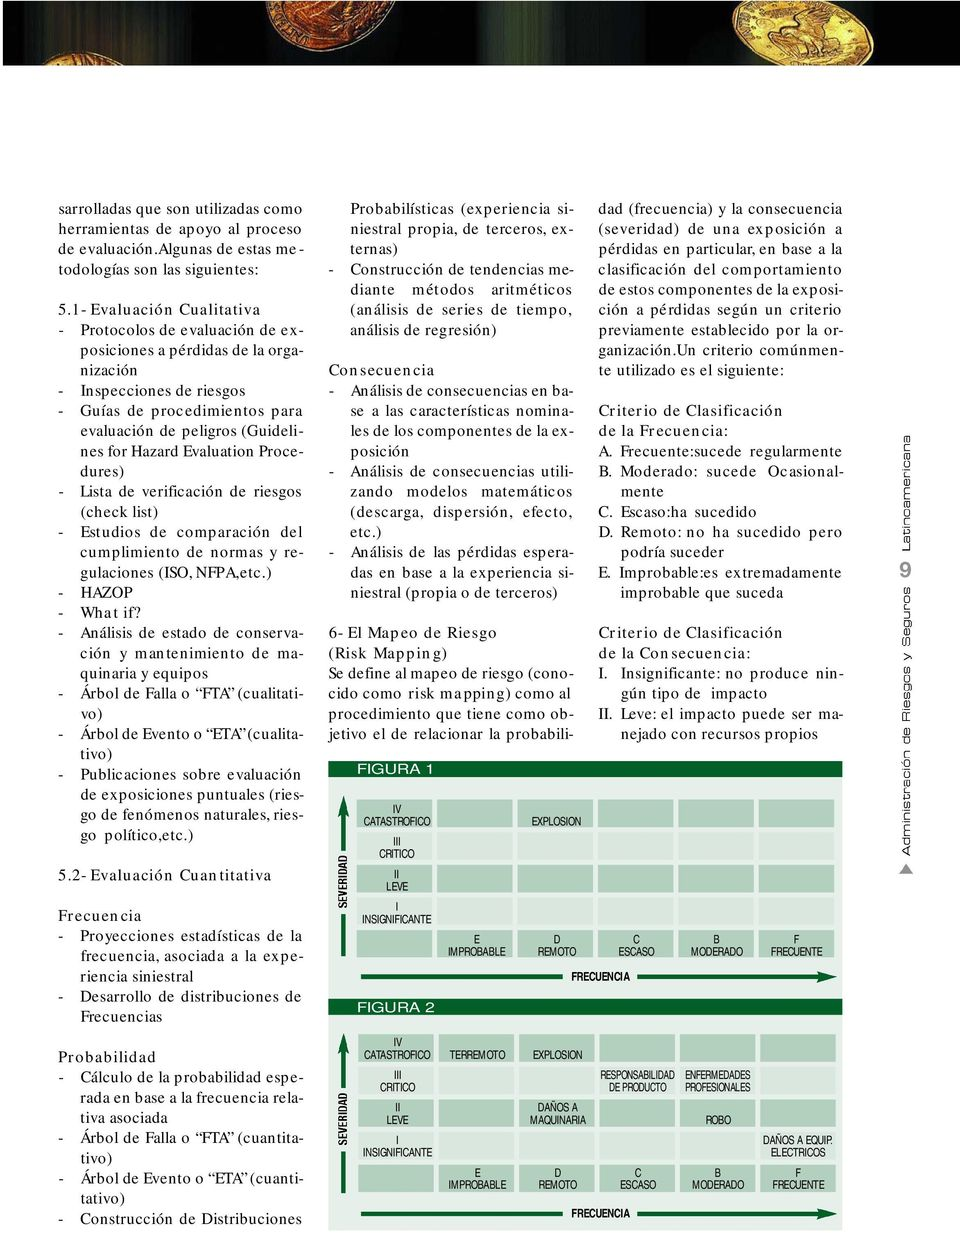 Hazard Evaluation Procedures) - Lista de ve rificación de ri esgos (check list) - Estudios de comparación del cumplimiento de normas y regulaciones (ISO, NFPA,etc.) - HAZOP - What if?